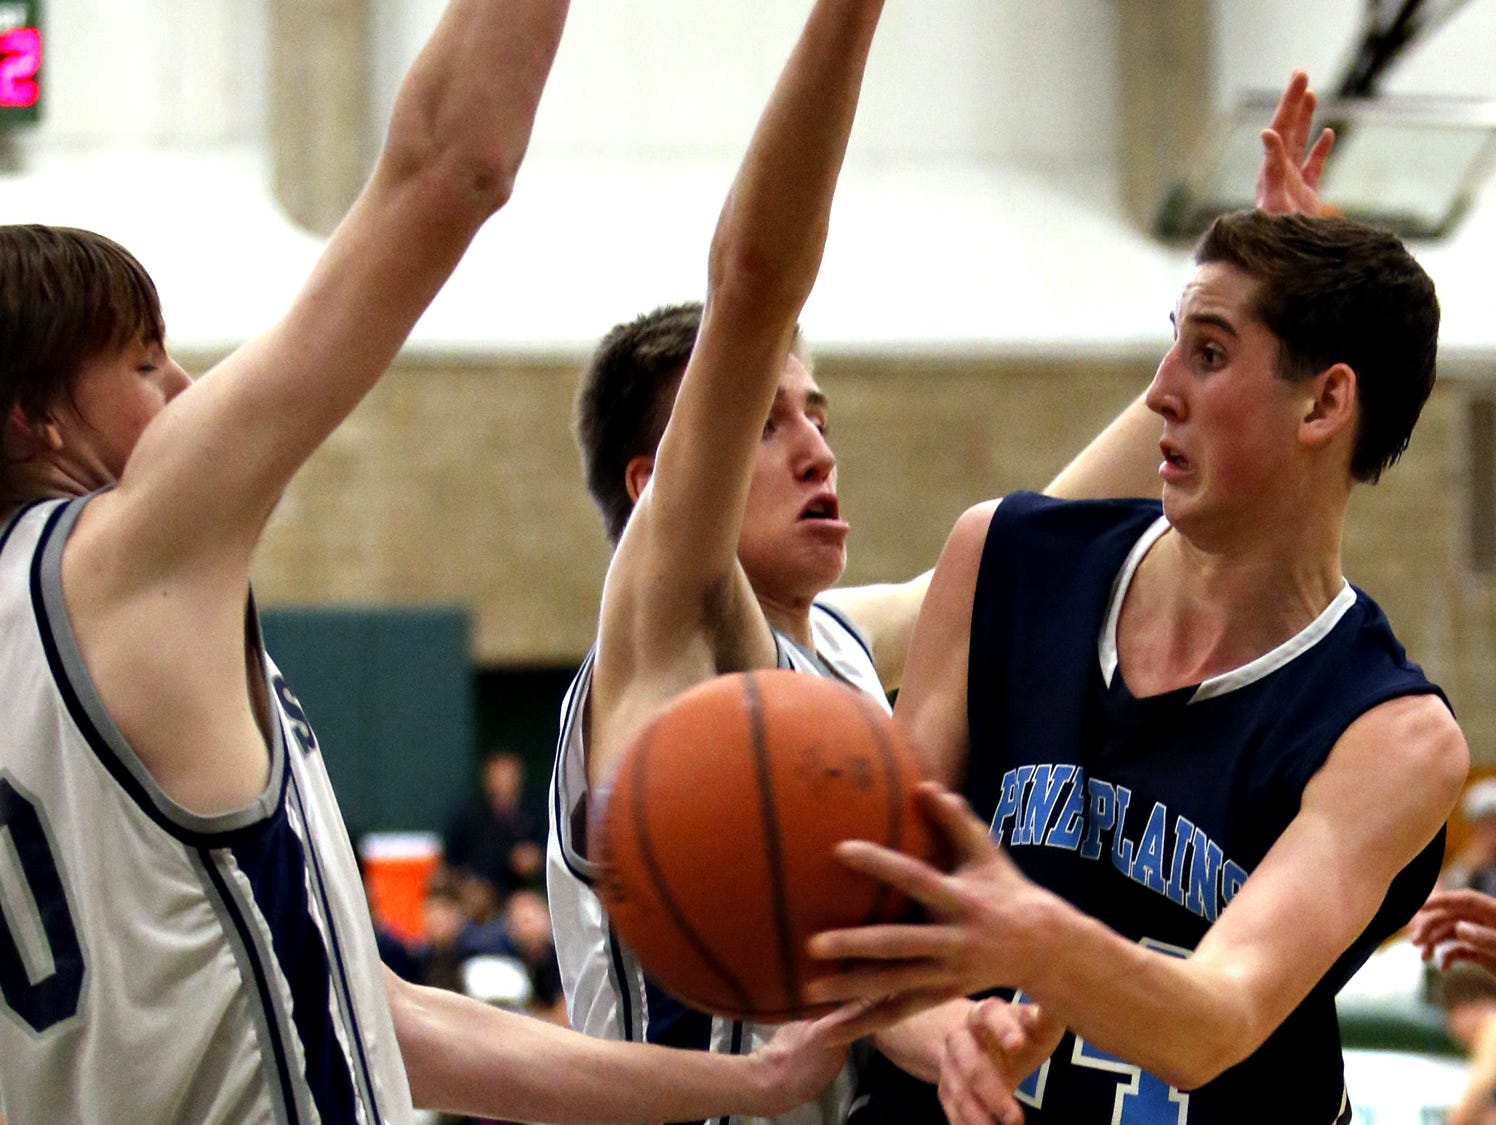 Pine Plains' Tyler Lydon dishes between Stony Brook School's Andrew Daniel, left, and Max Pitsch in a Class C state regional final at Old Westbury on March 9, 2013.